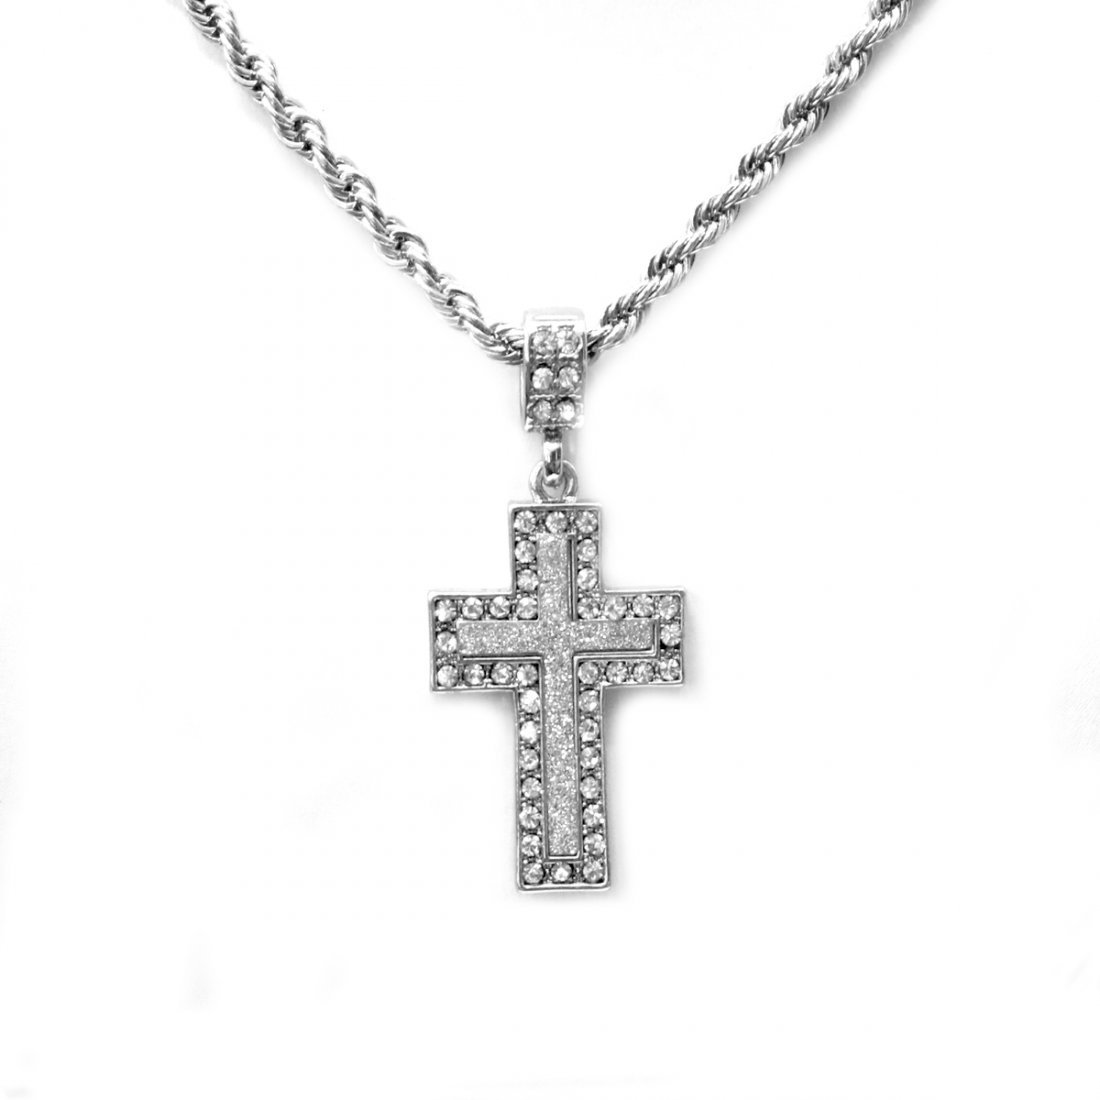 STAINLESS STEEL CROSS CZ PENDANT COMES W/CHAIN